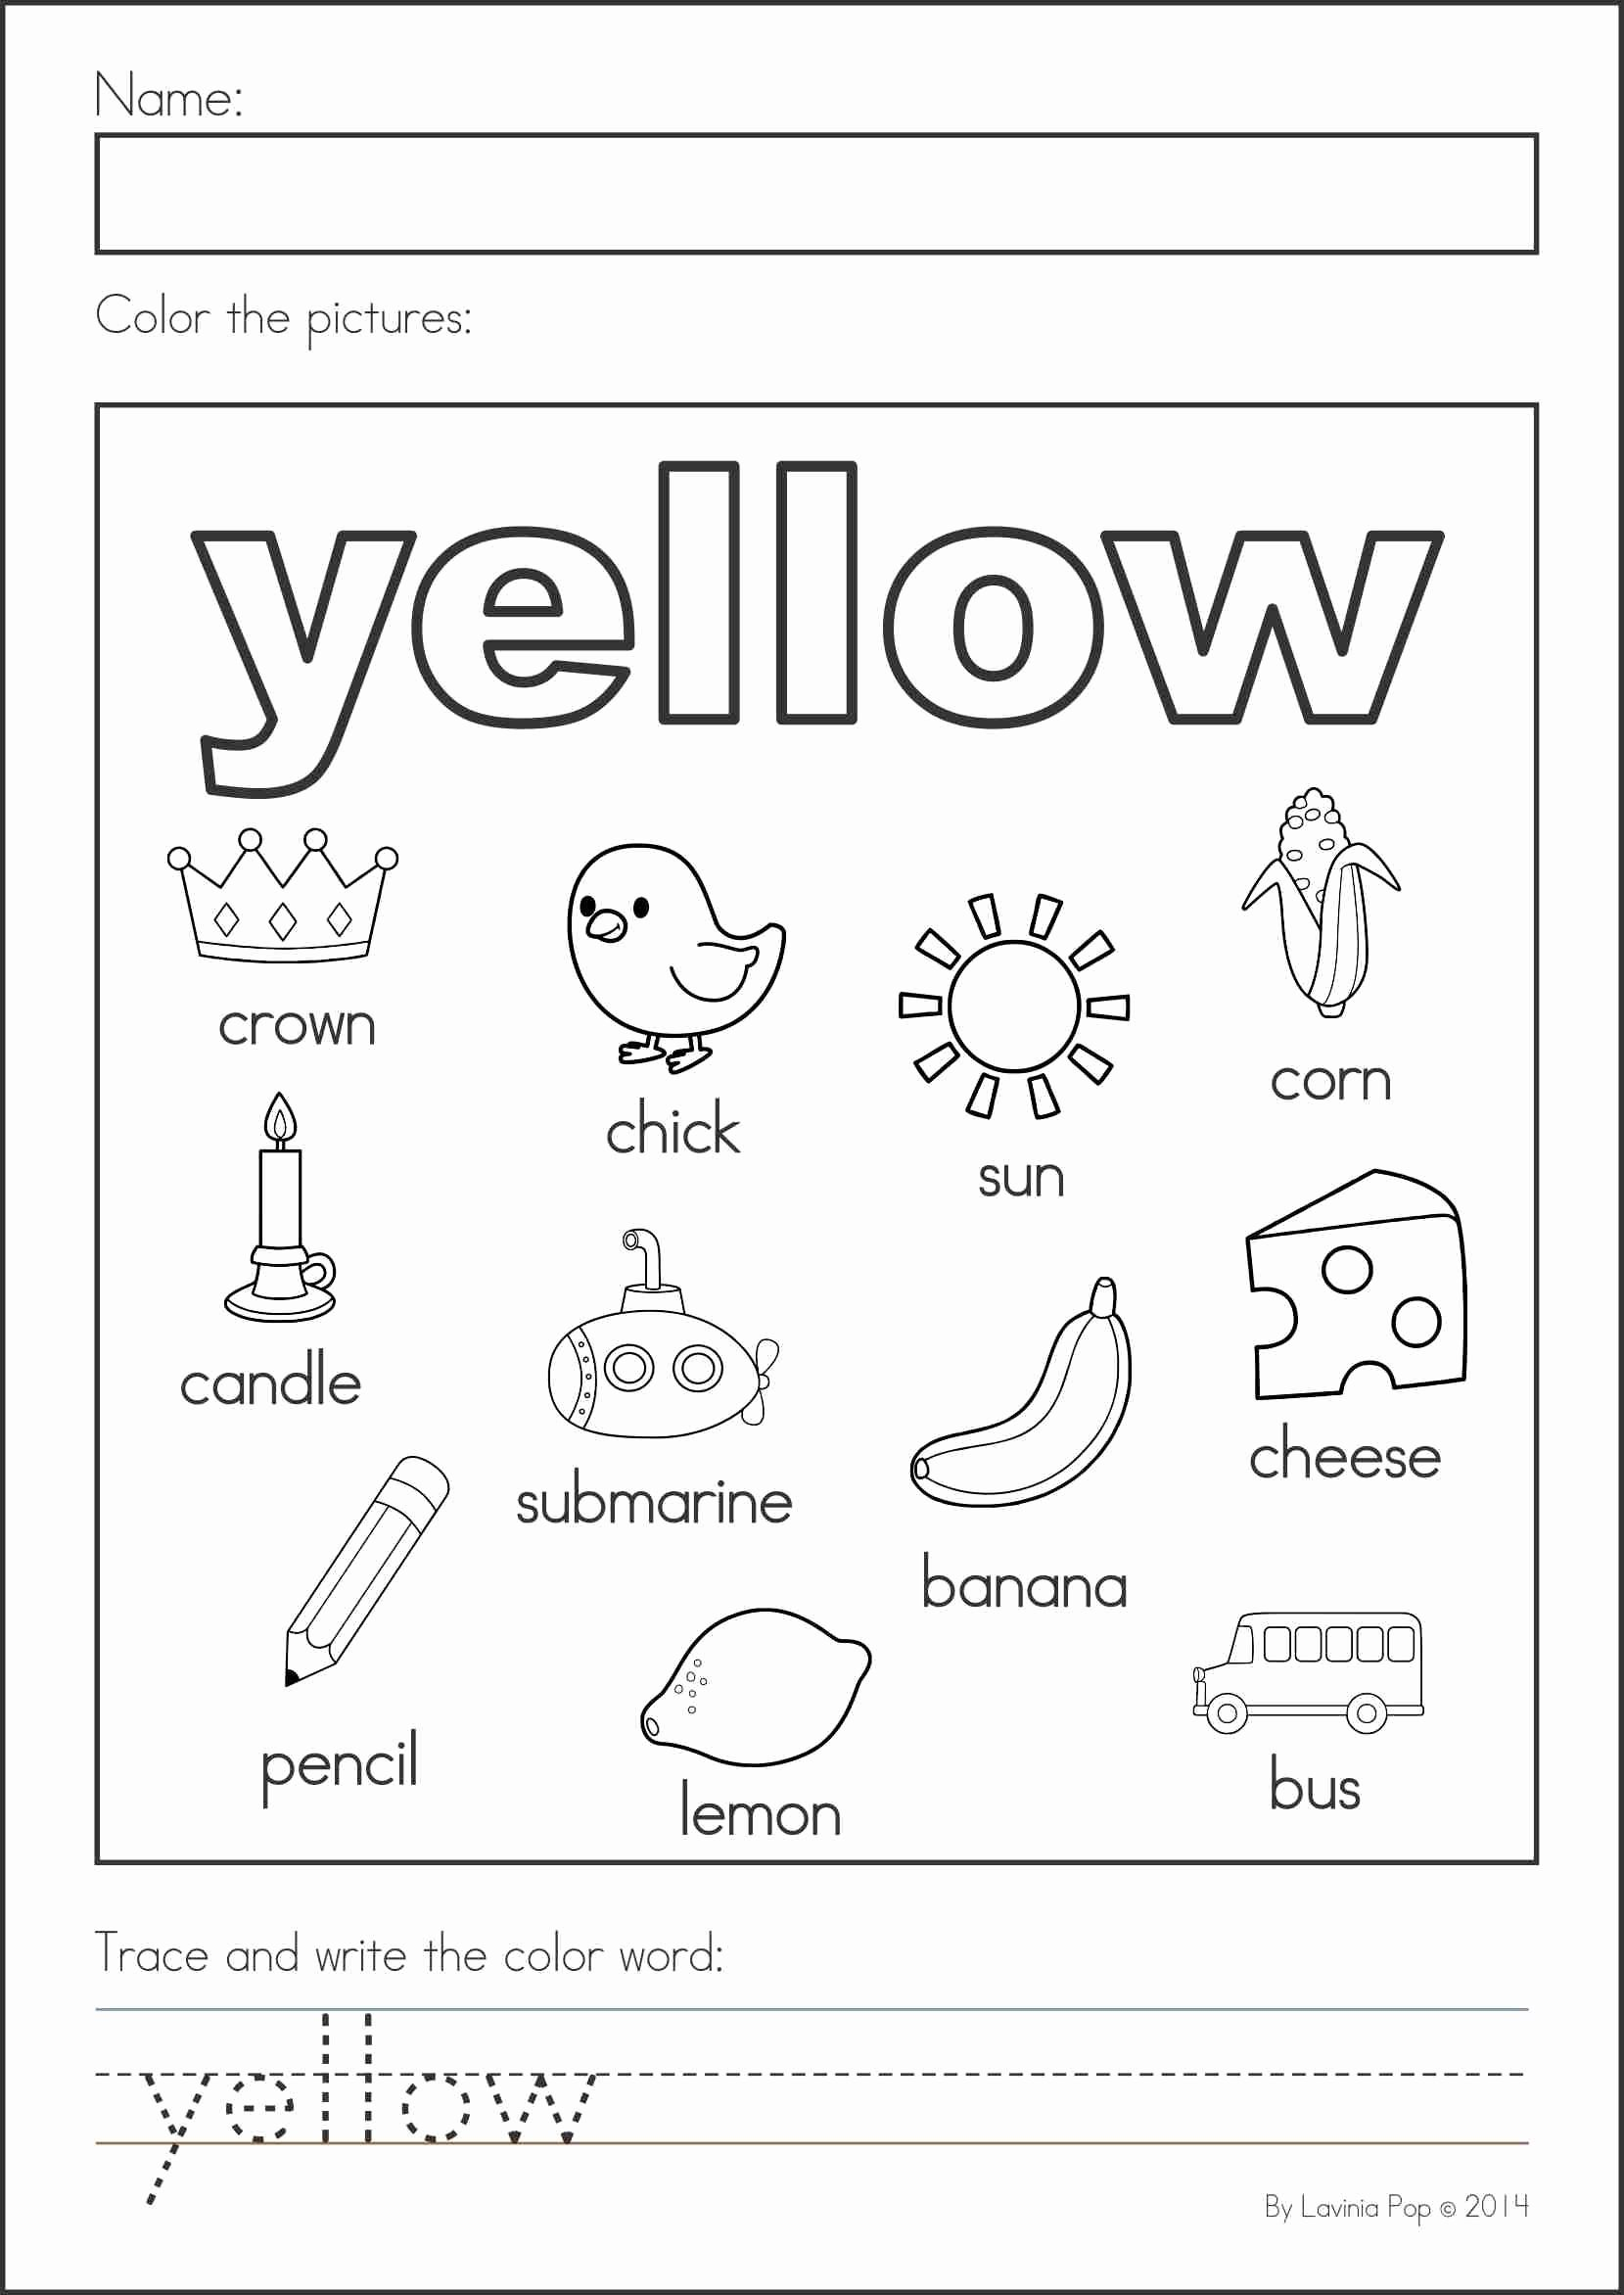 Color Yellow Worksheets for Preschoolers New Back to School Math & Literacy Worksheets and Activities No